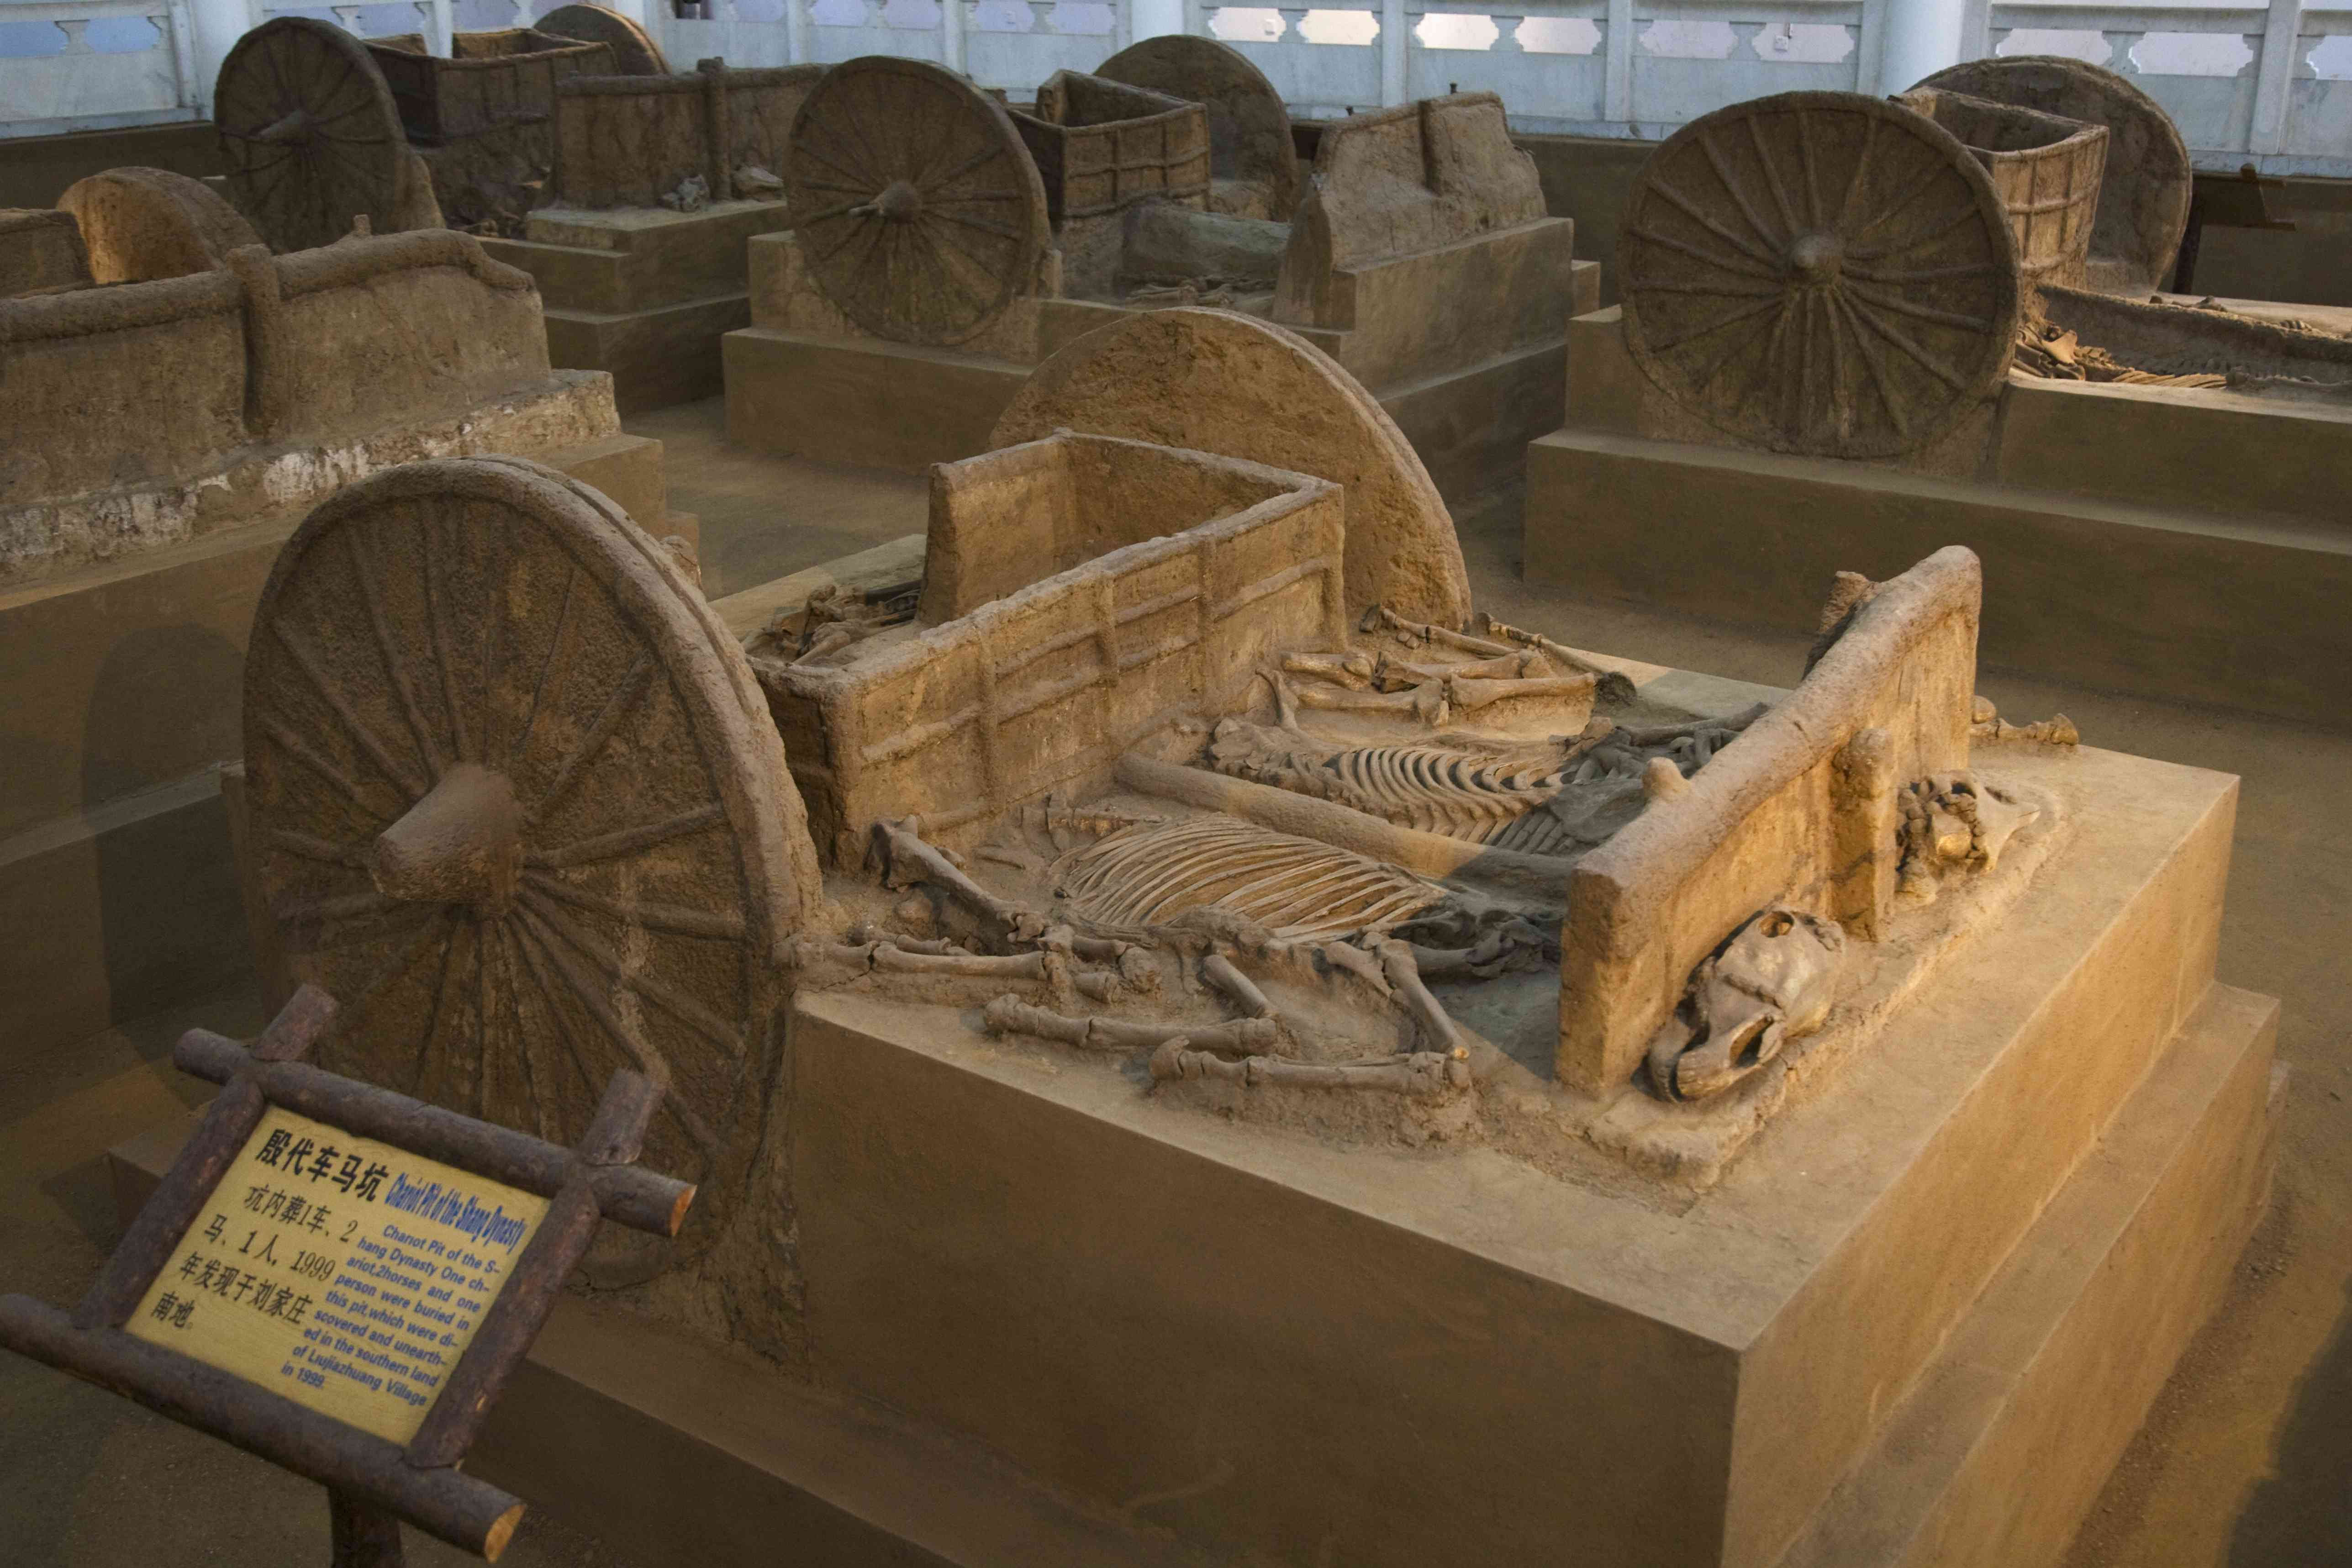 China, Henan Province, Anyang, Yinxu Museum, chariot excavated from Yinxu, the ruins of the Shang dynasty dating back to 4000 years ago